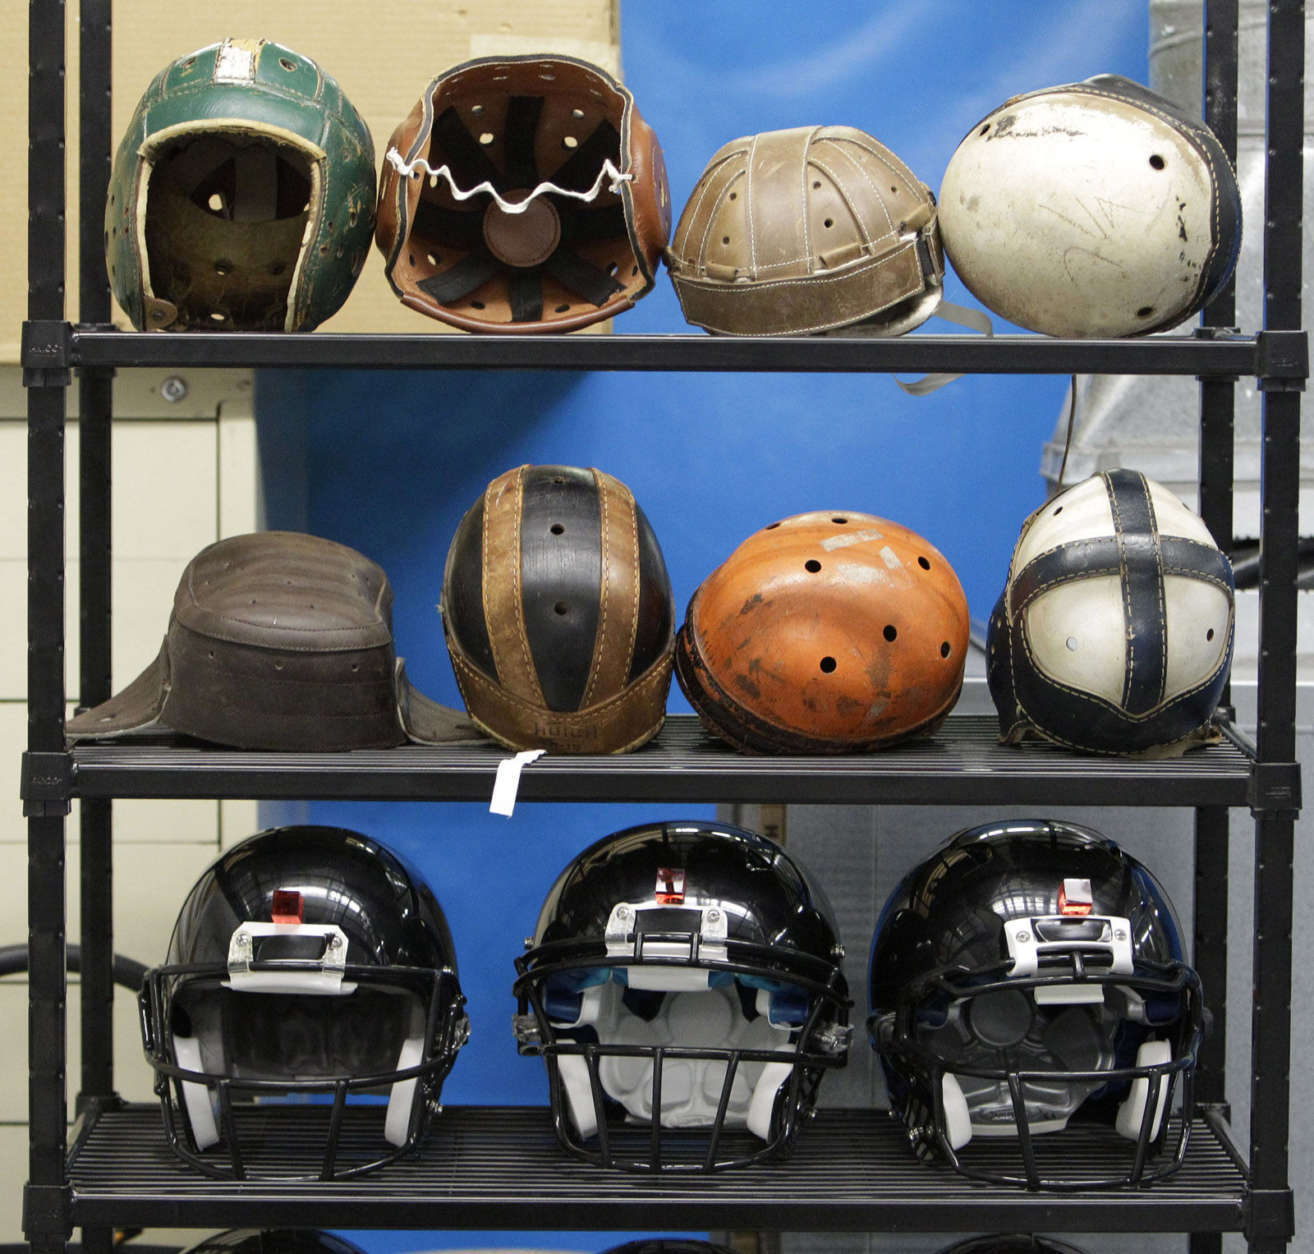 Helmets to be used for testing football helmet to helmet collisions sit in a rack at a laboratory in the Cleveland Clinic's Lutheran Hospital in Cleveland Thursday, Sept. 23, 2010. Under the direction of Spine Research Laboratory director Lars Gilbertson, the Clinic will soon begin testing to research concussions and other sports-related head and neck injuries. (AP Photo/Mark Duncan)